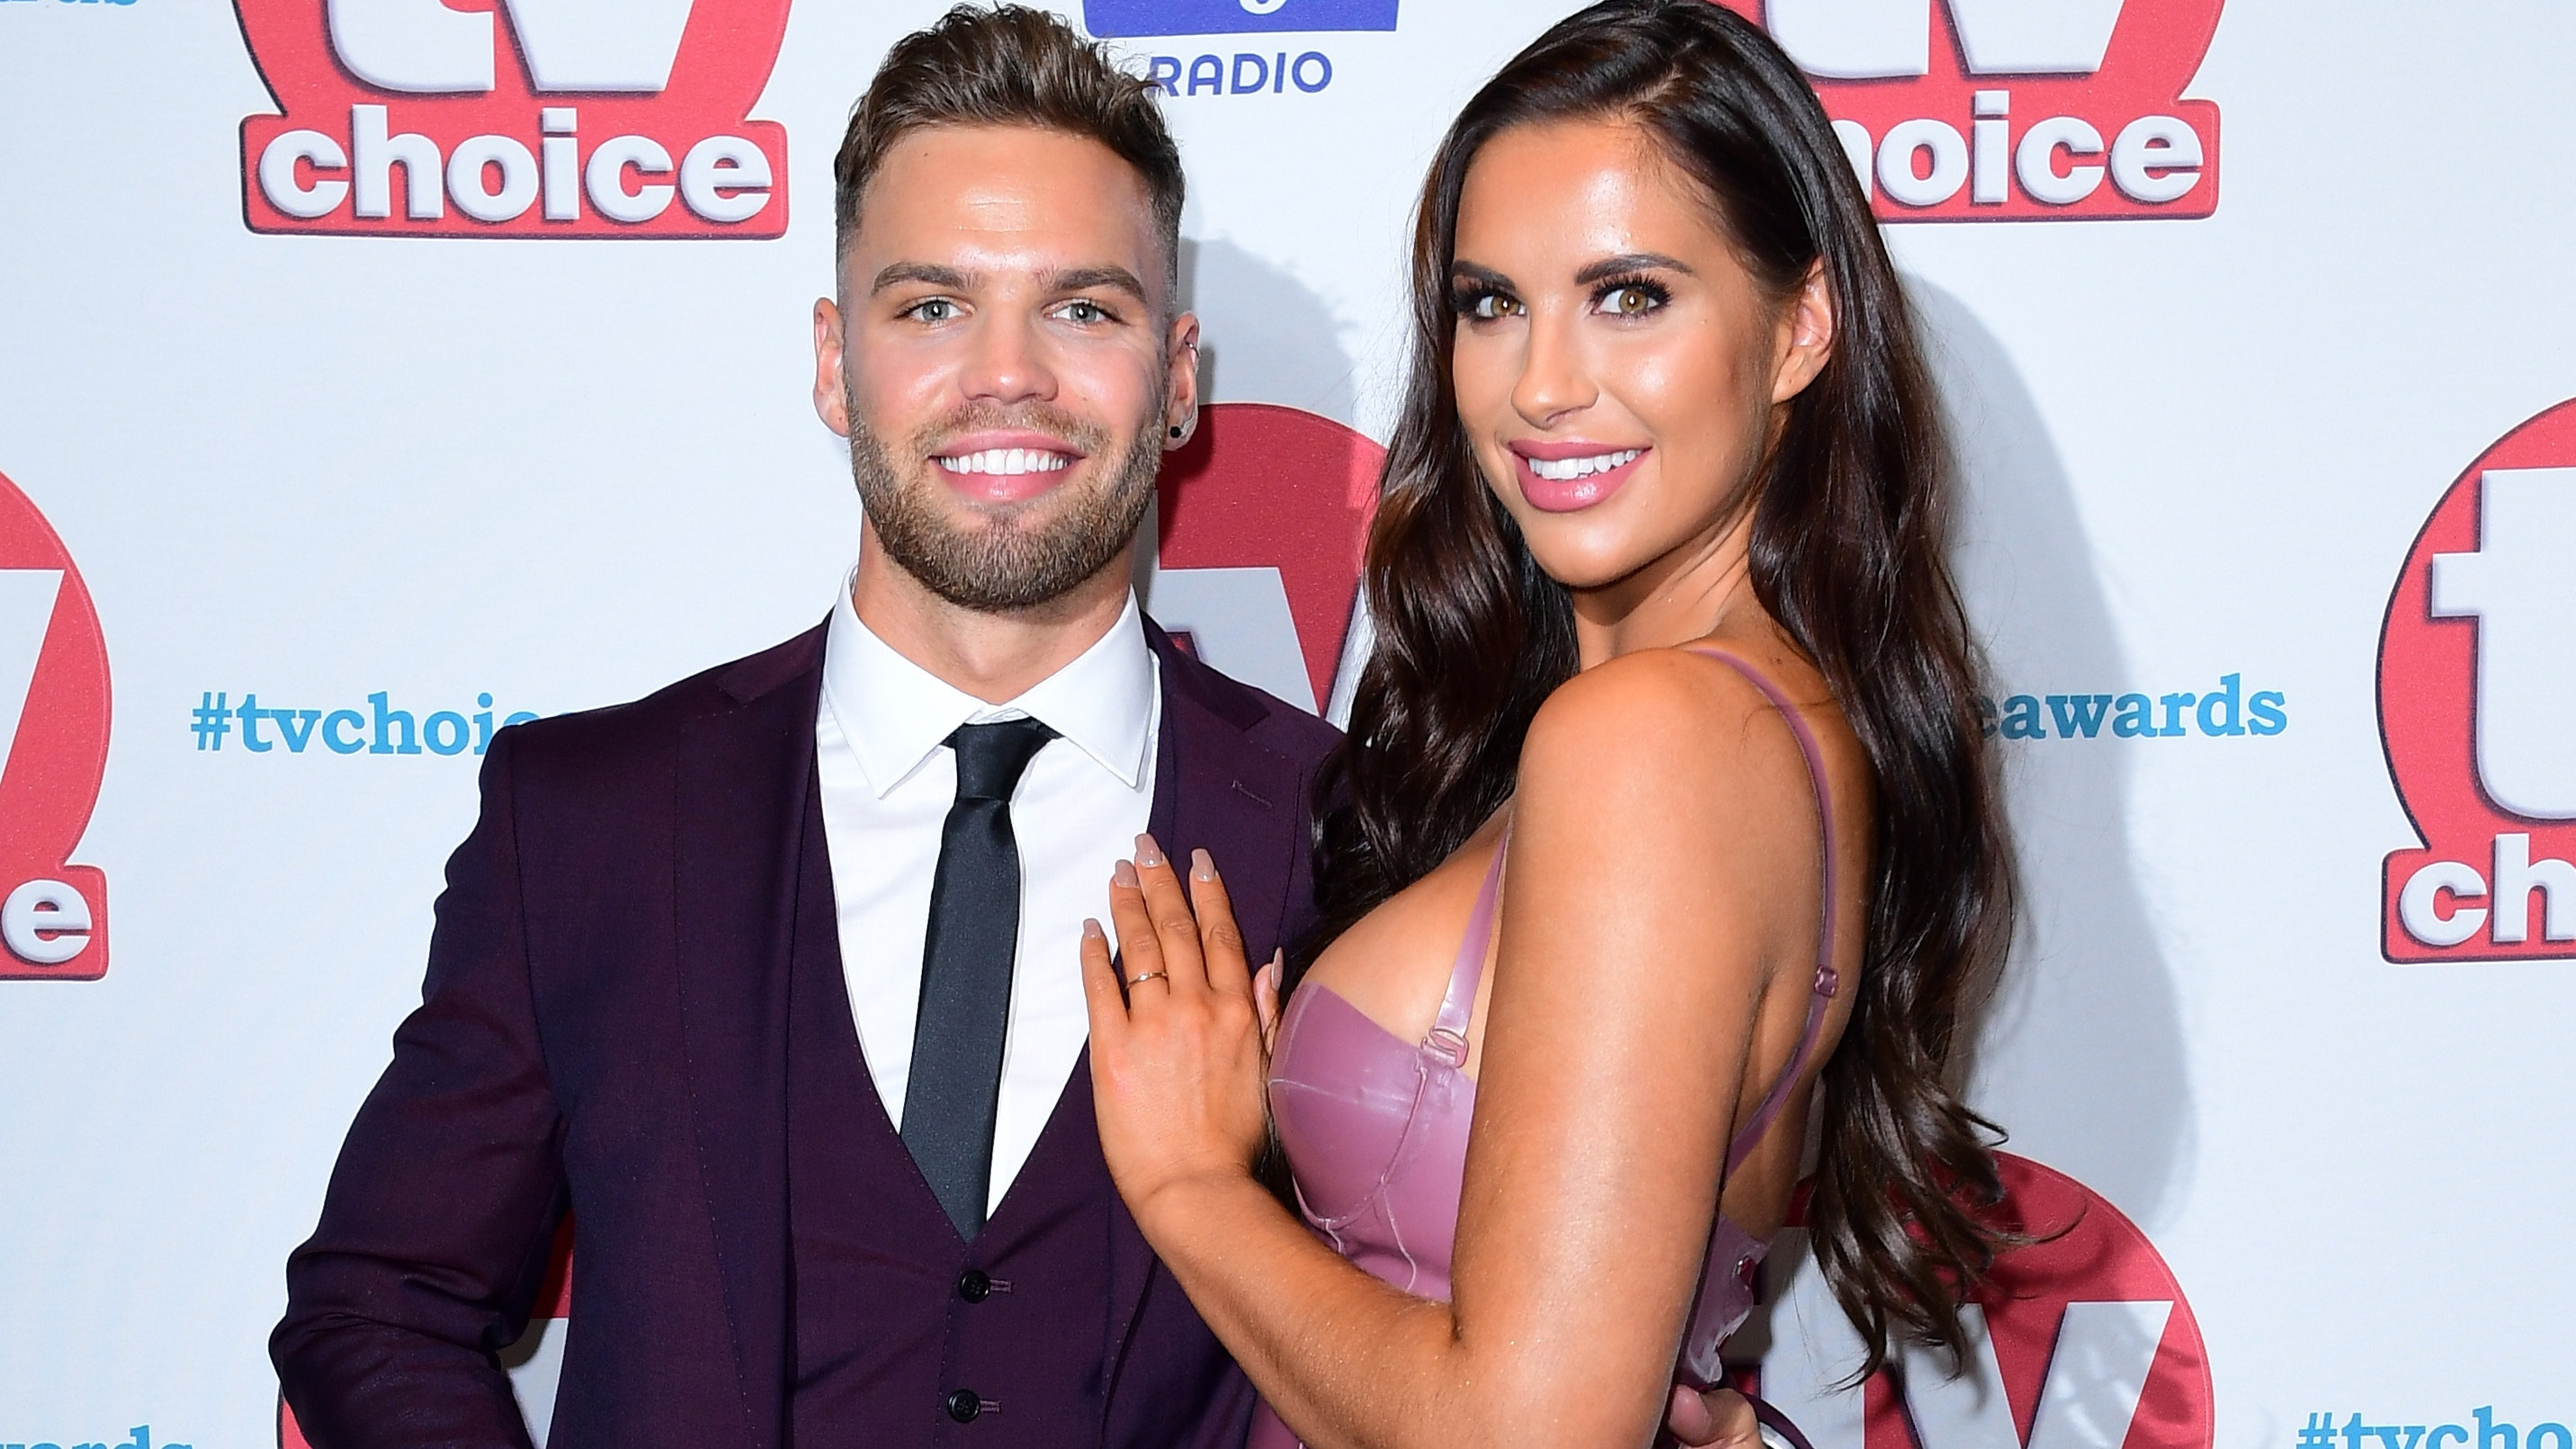 Love Island Jessica Shears And Dom Lever Are Engaged After Meeting On The Itv2 Reality Show Three Months Ago